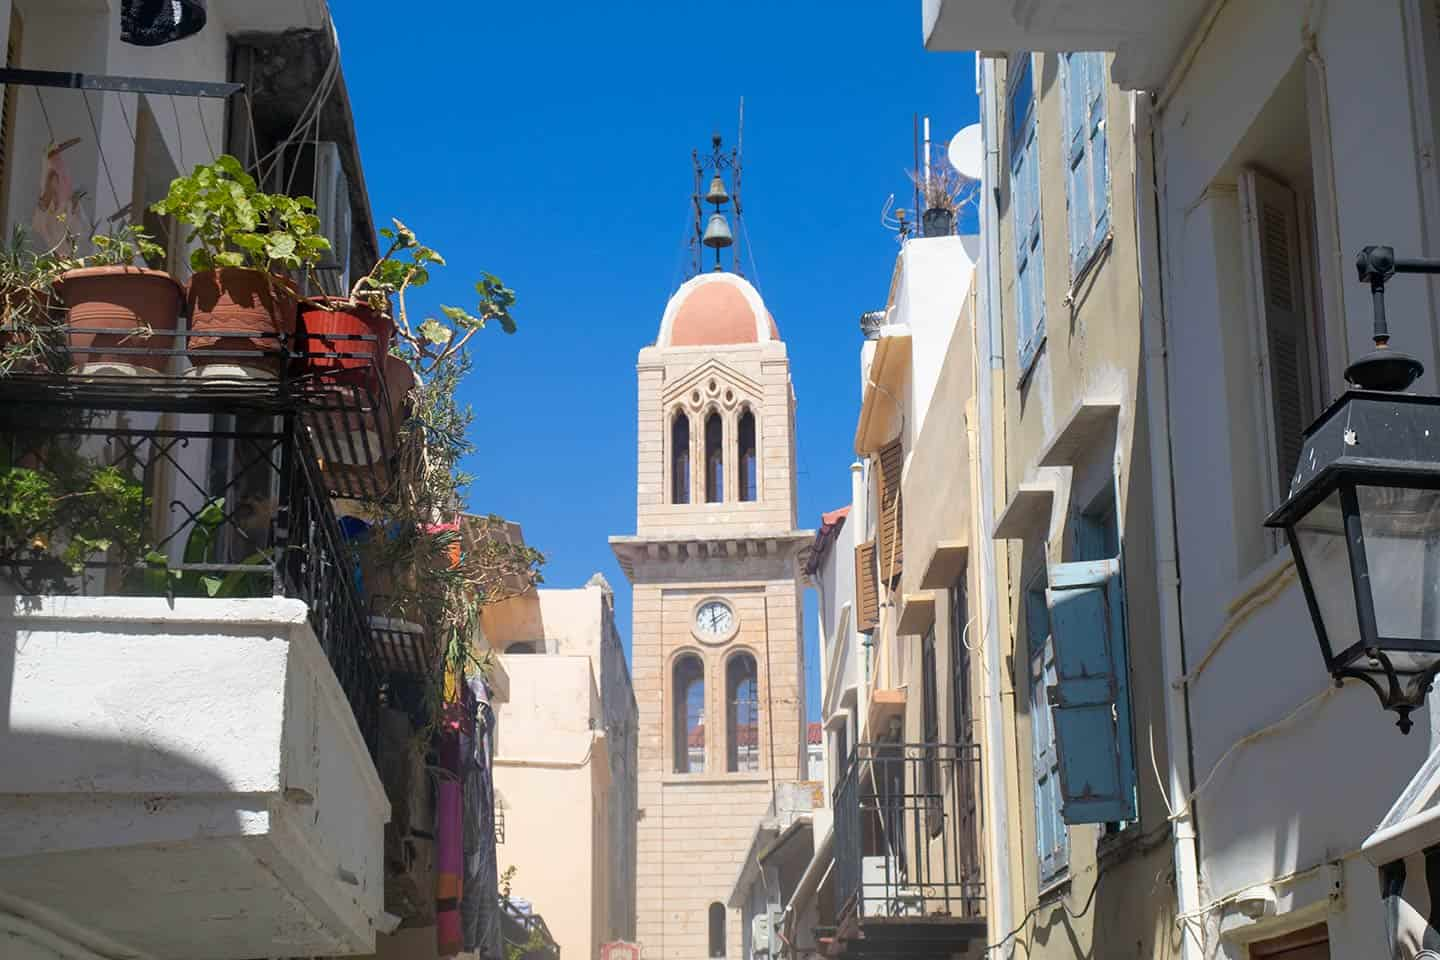 Image of the cathedral in Rethymno framed by houses